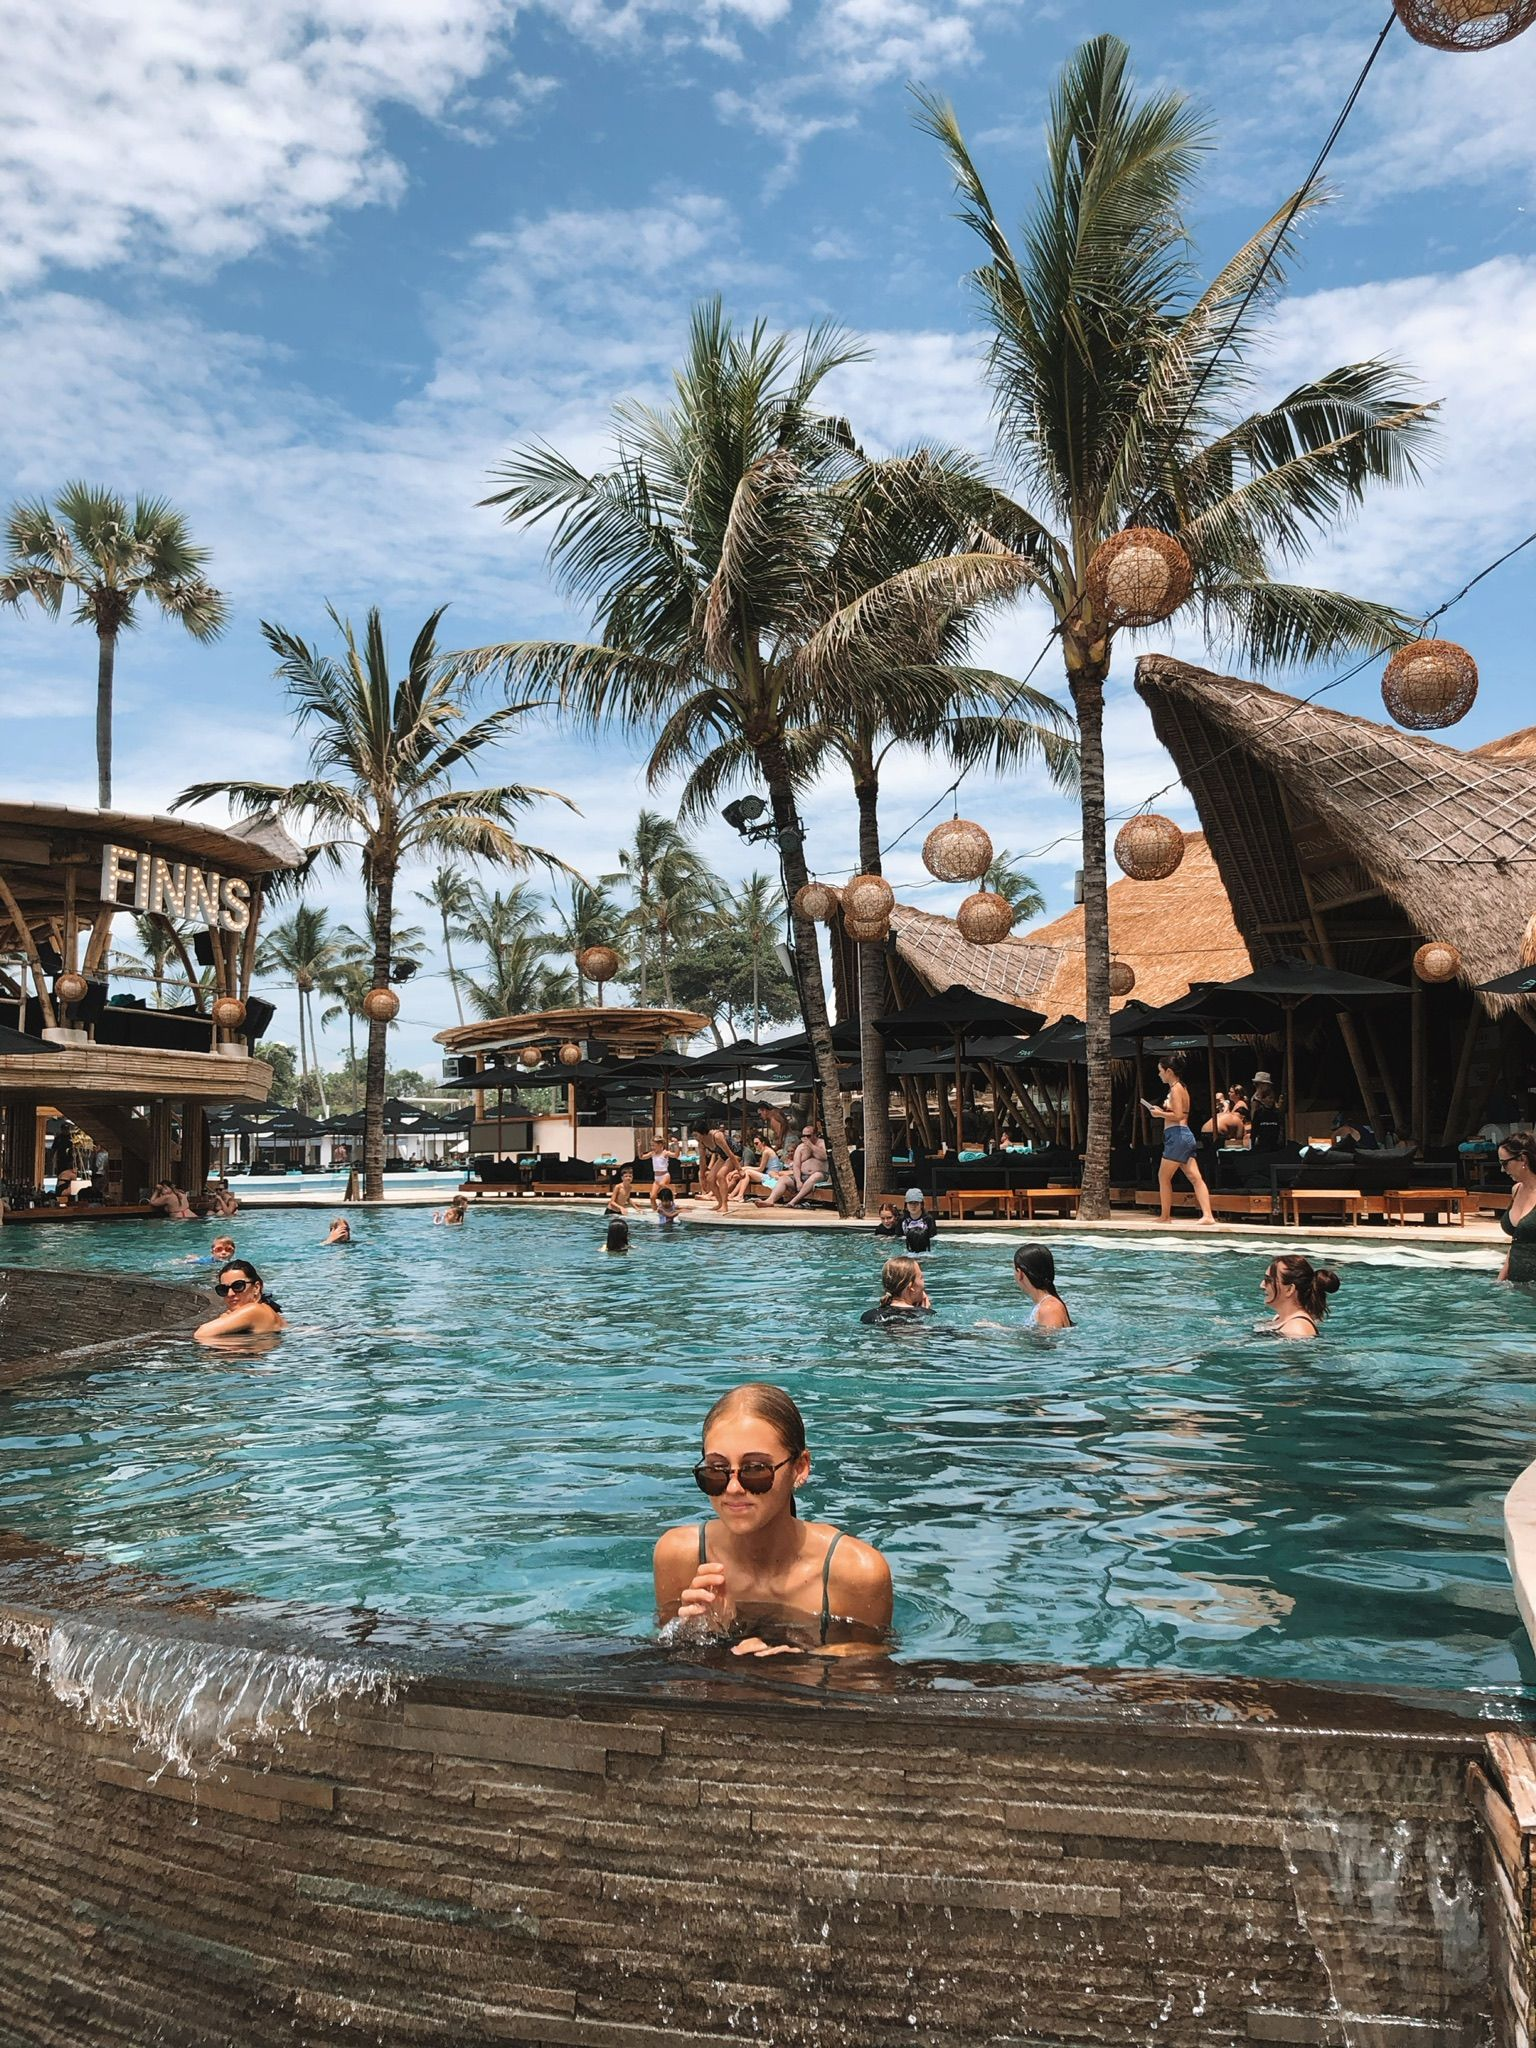 Summer Holiday Bali Finns Beach Club Pool Swimming Vsco Aesthetic Vibes Tanned In 2020 Travel Aesthetic Bali Beaches Bali Travel